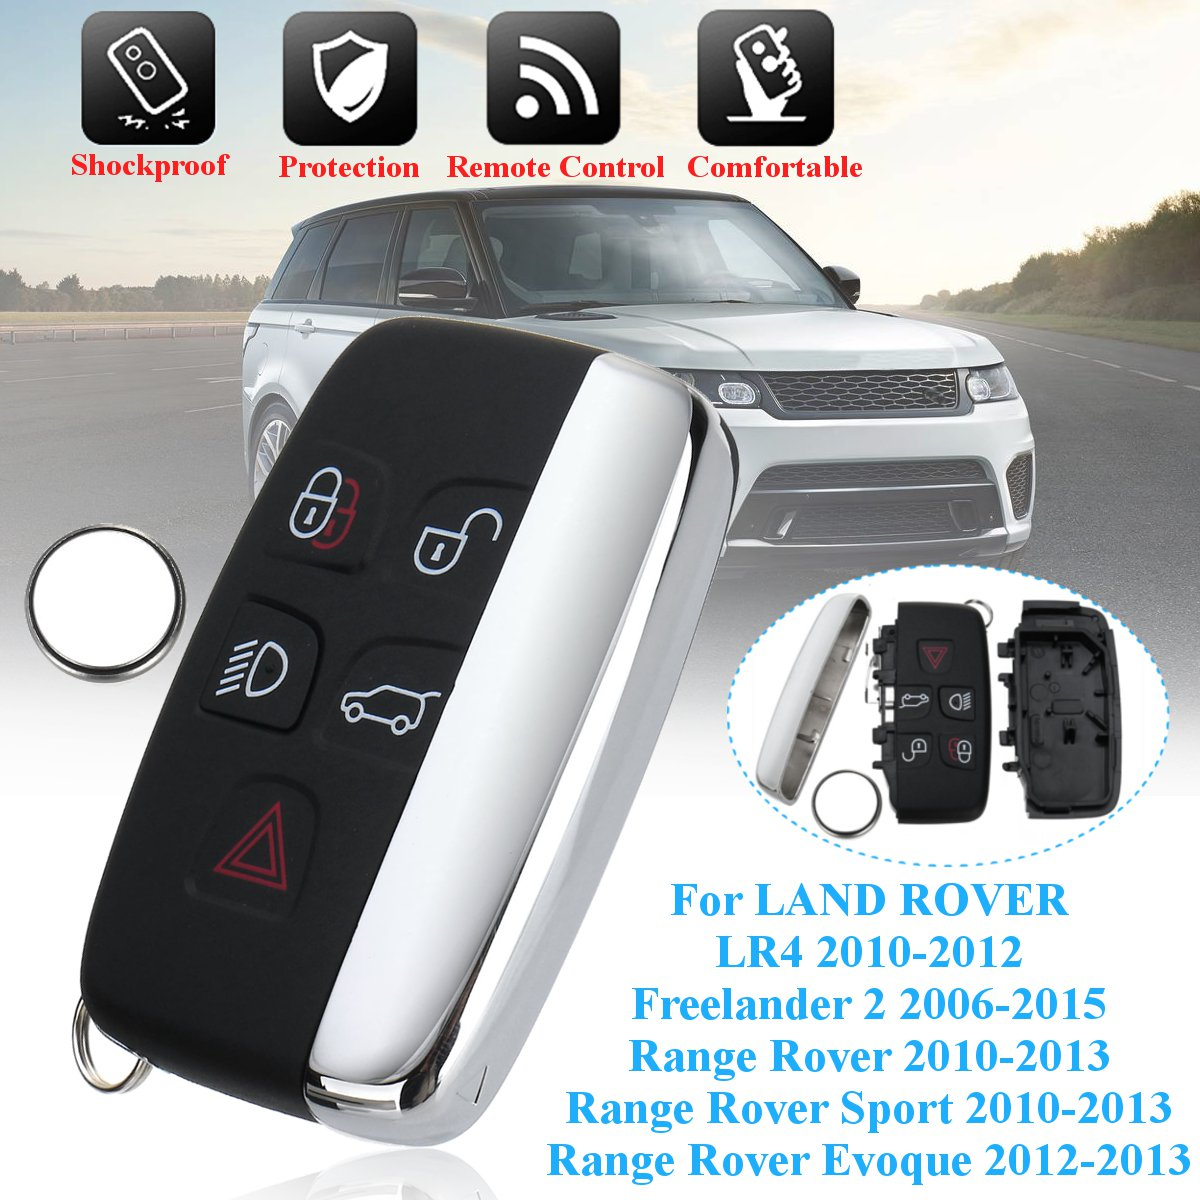 Cr2032 Battery 5 Button Remote Key Shell Case With Cr2032 Battery For Land Rover Lr4 Range Rover Sport Evoque Freelander 2 2006 2015